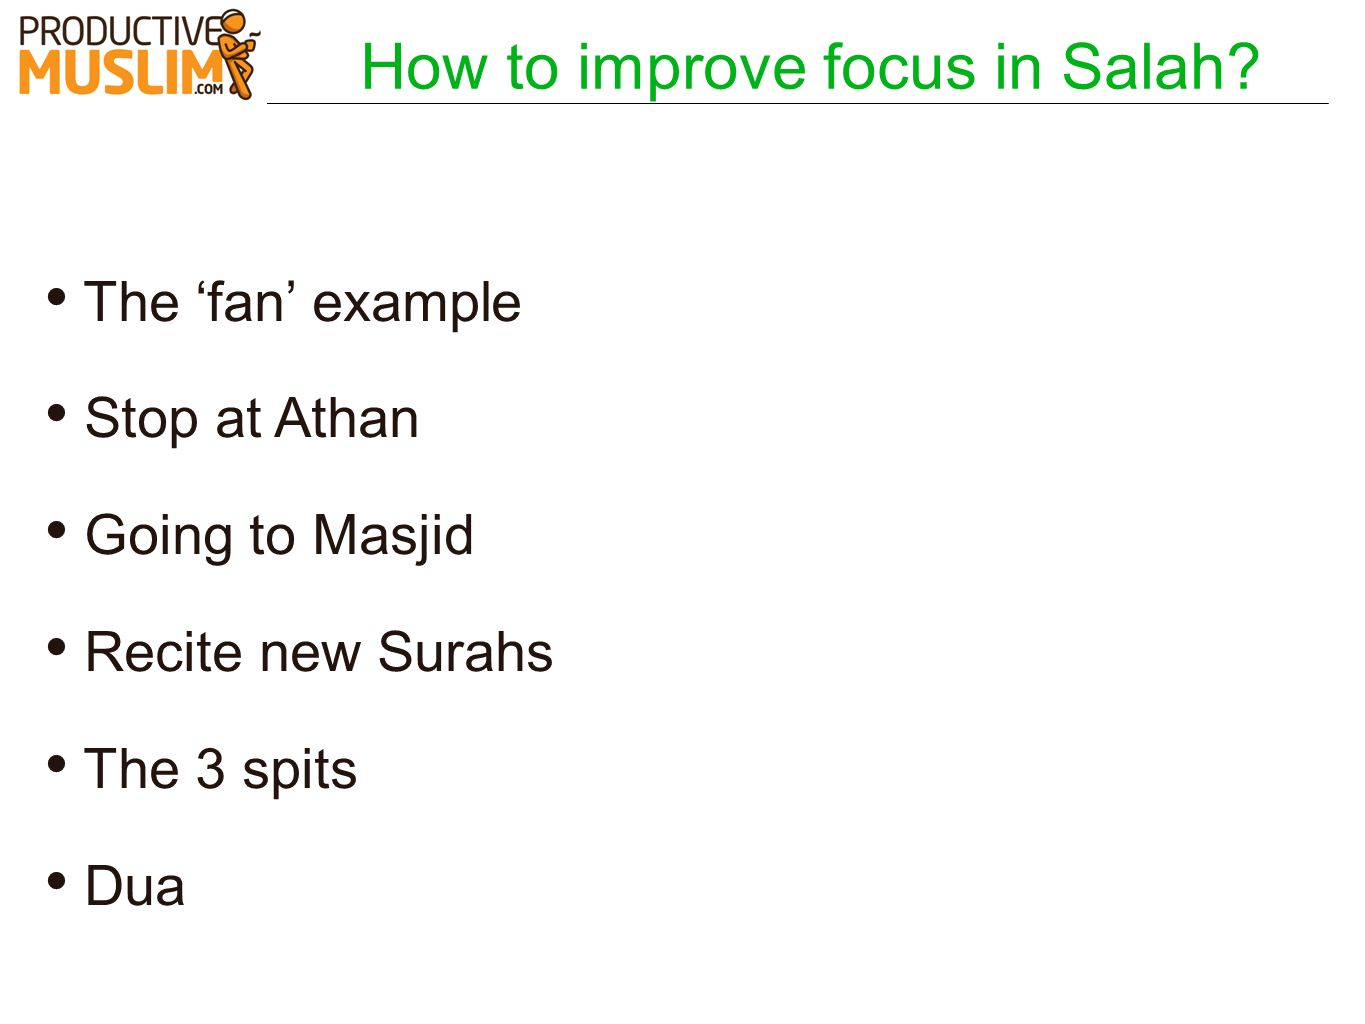 How to improve focus in Salah